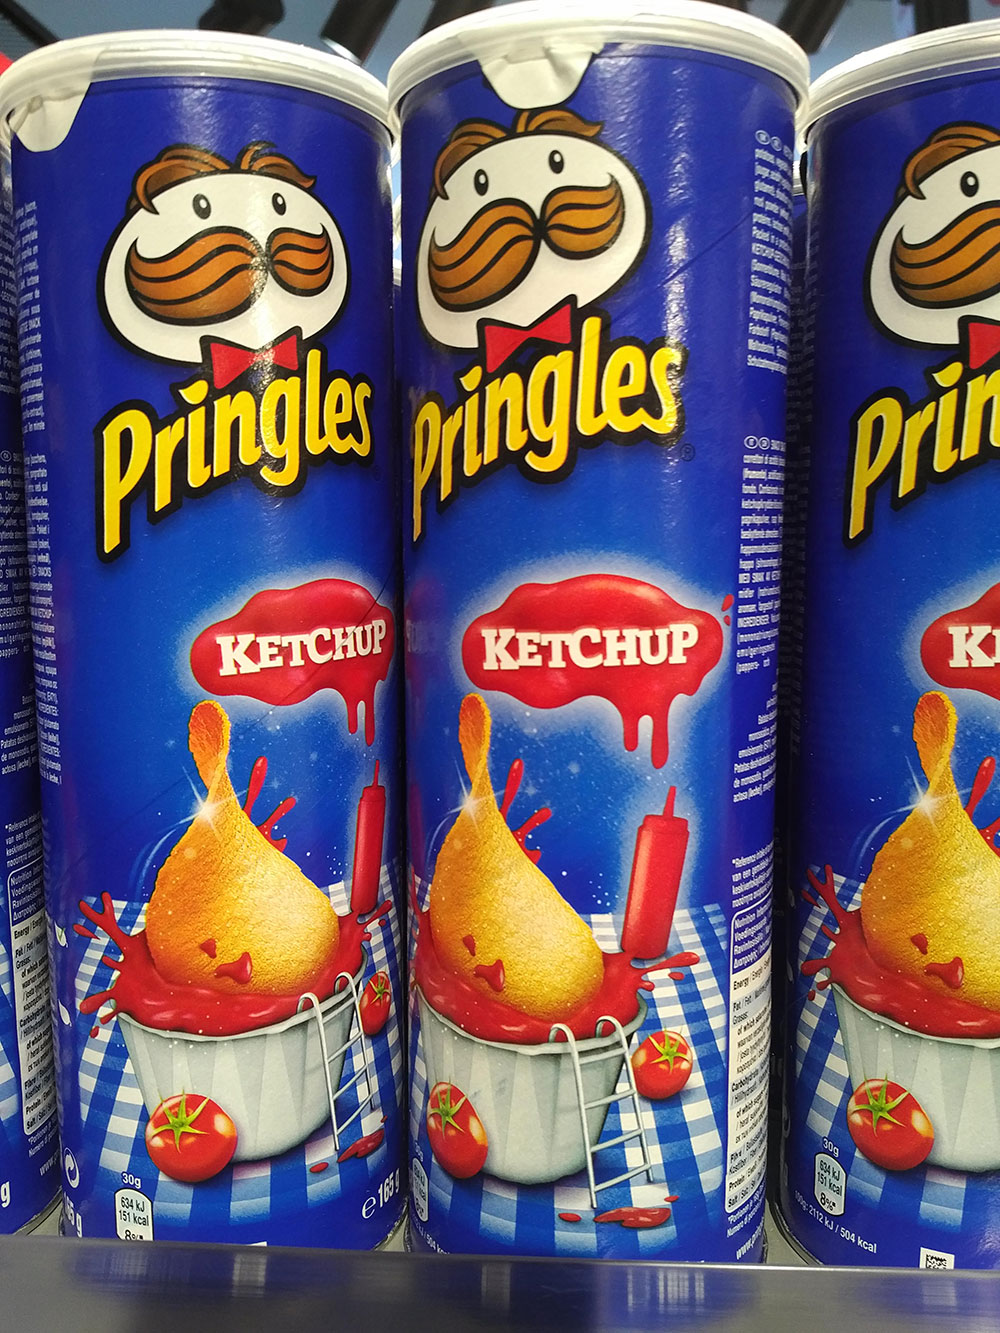 Ketchup flavour Pringles — whatever next!